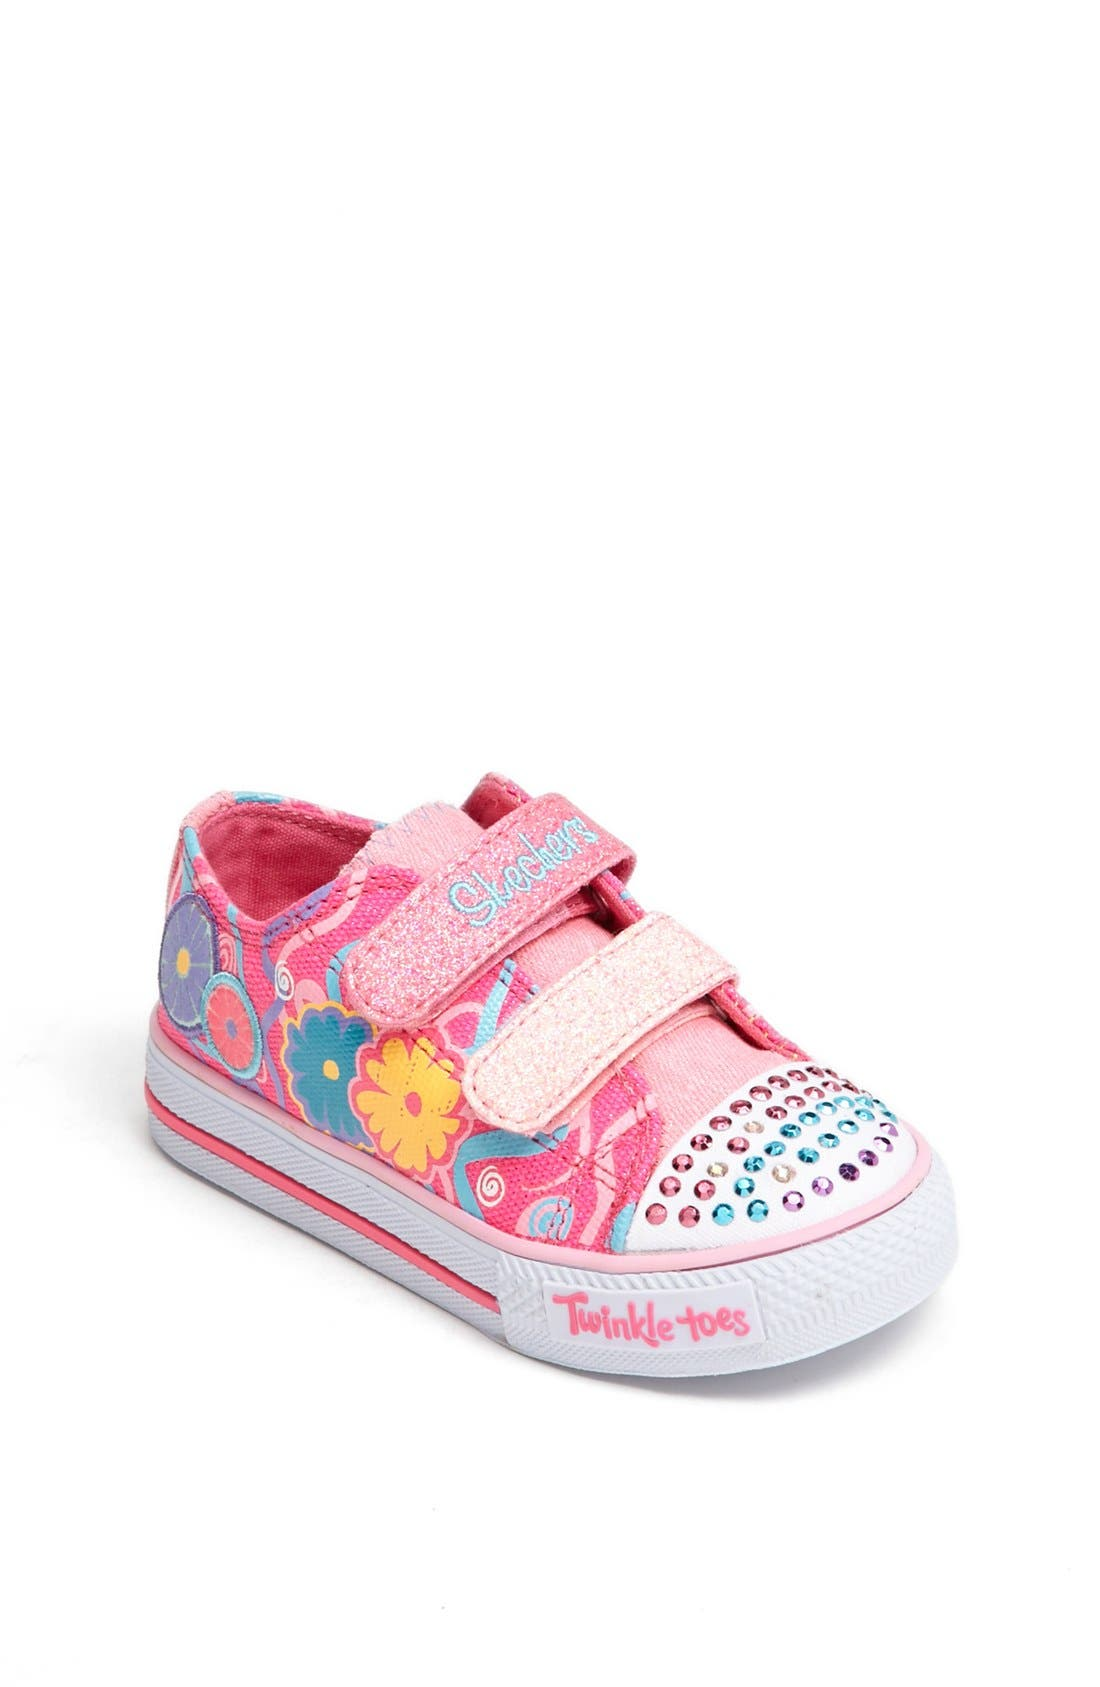 Main Image - SKECHERS 'Twinkle Toes - Sweet Talk' Light-Up Sneaker (Walker & Toddler)